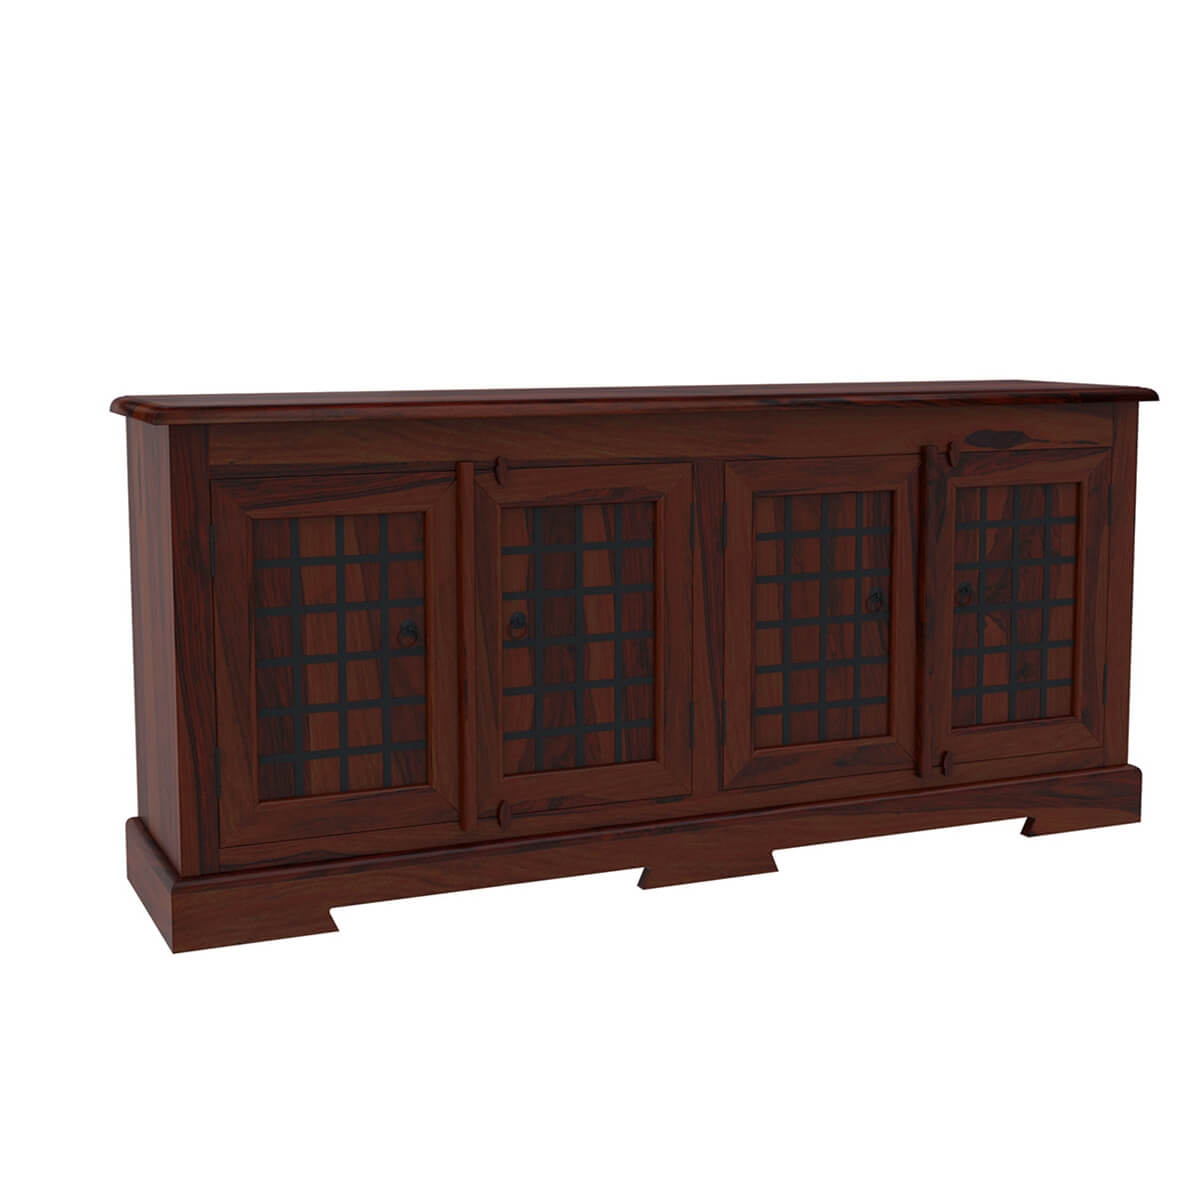 Sierra door sideboard solid wood buffet cabinet w